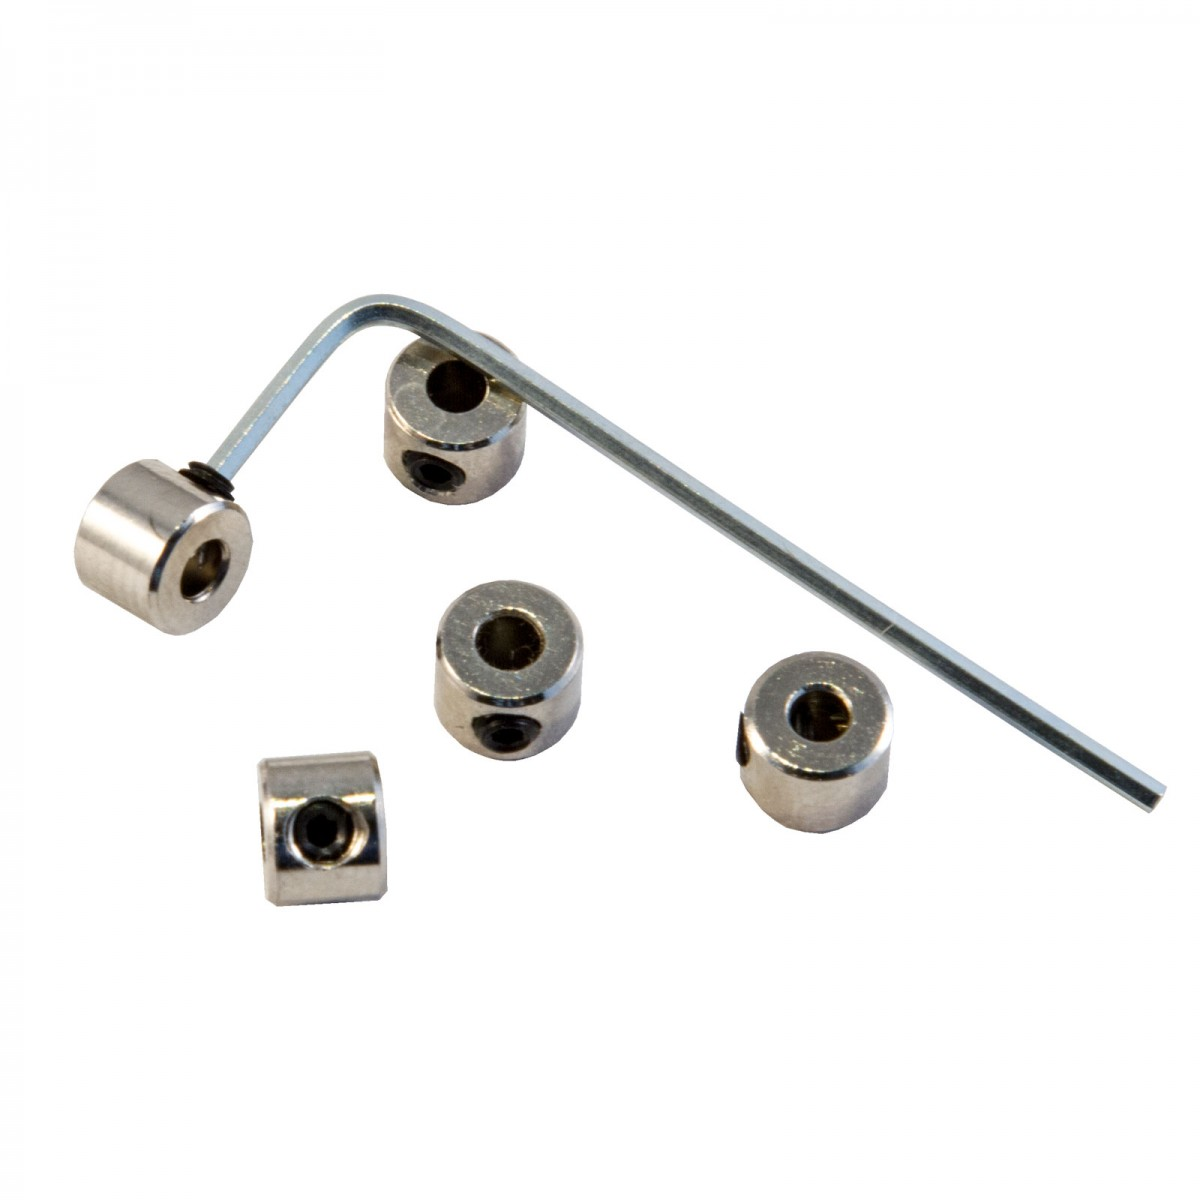 Nickel plated brass cable stoppers